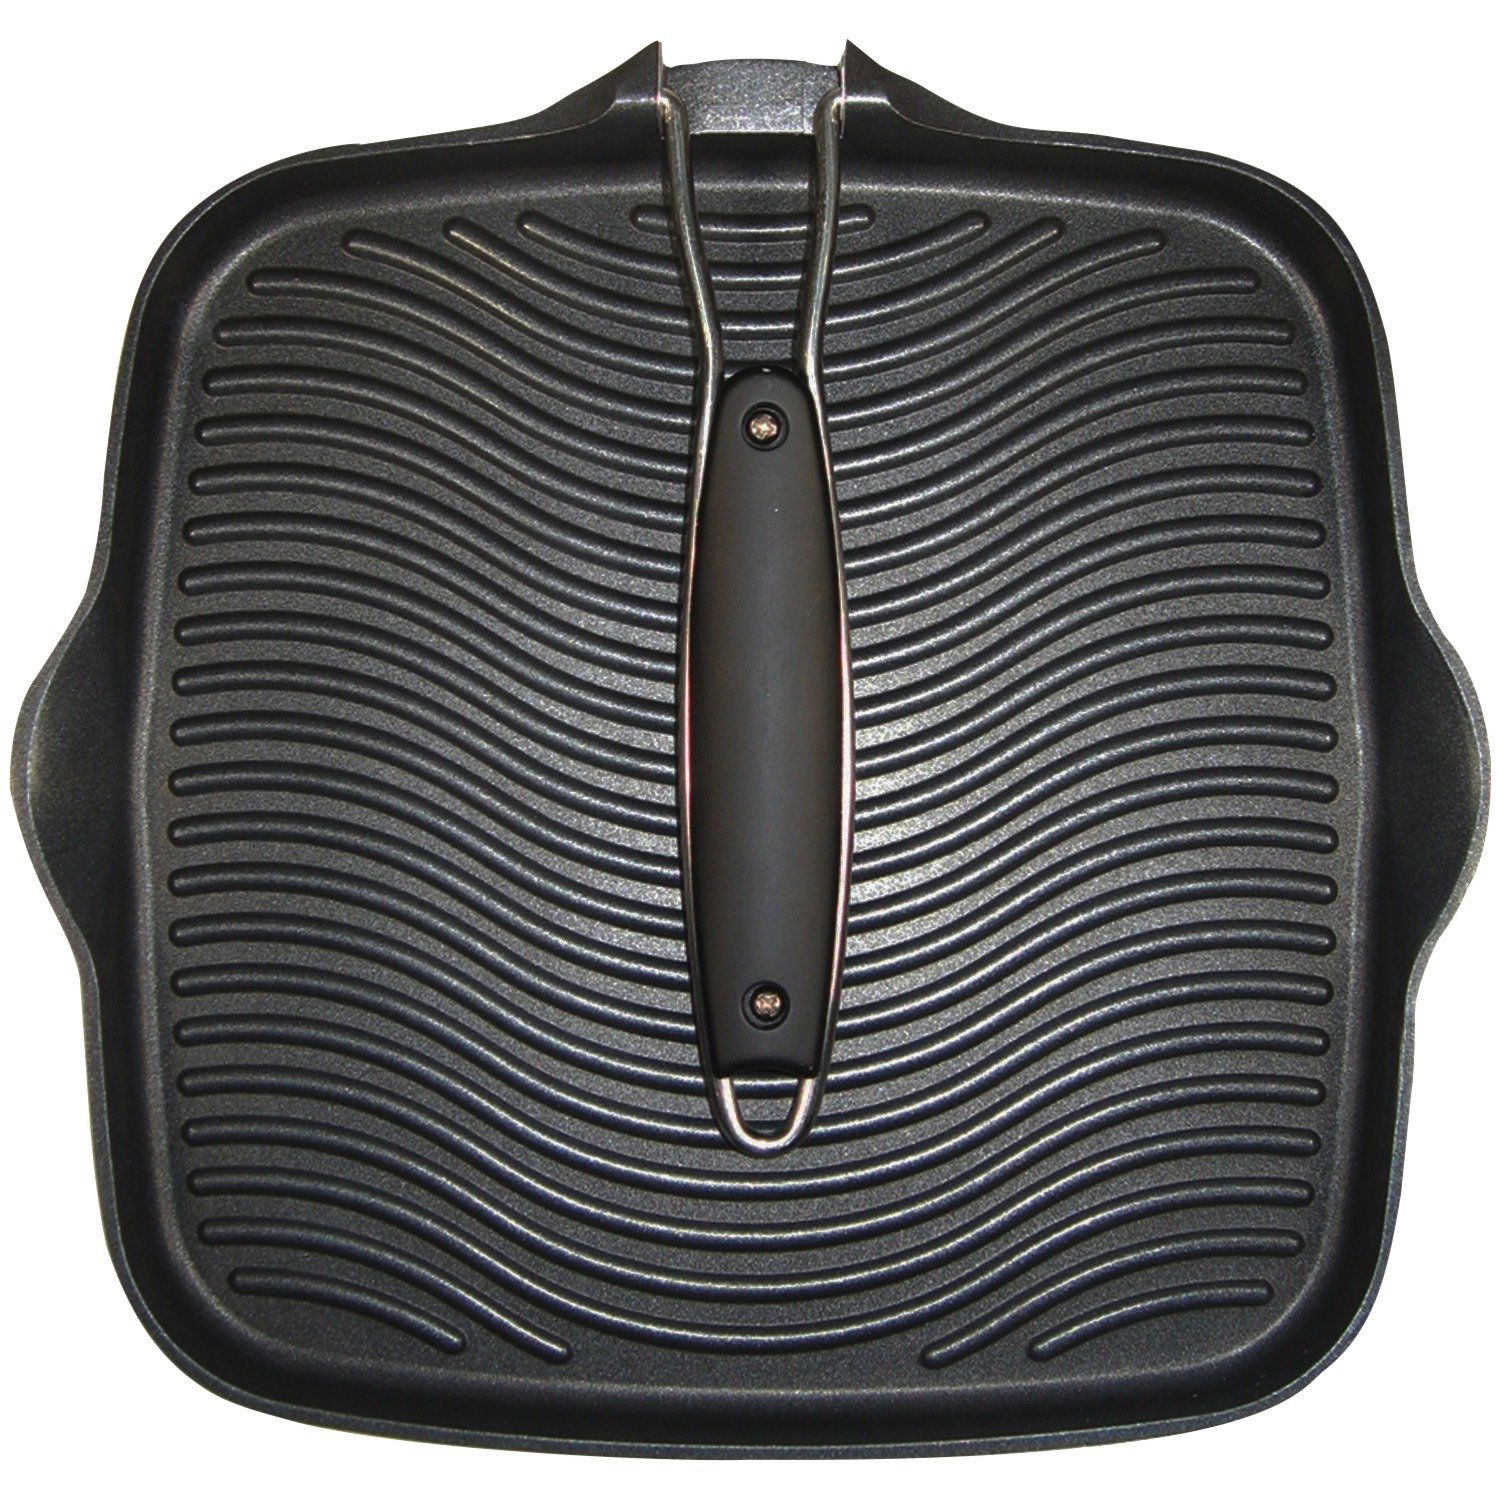 Starfrit 030036-006-SPEC 10 Grill Pan with Foldable Handle, Black